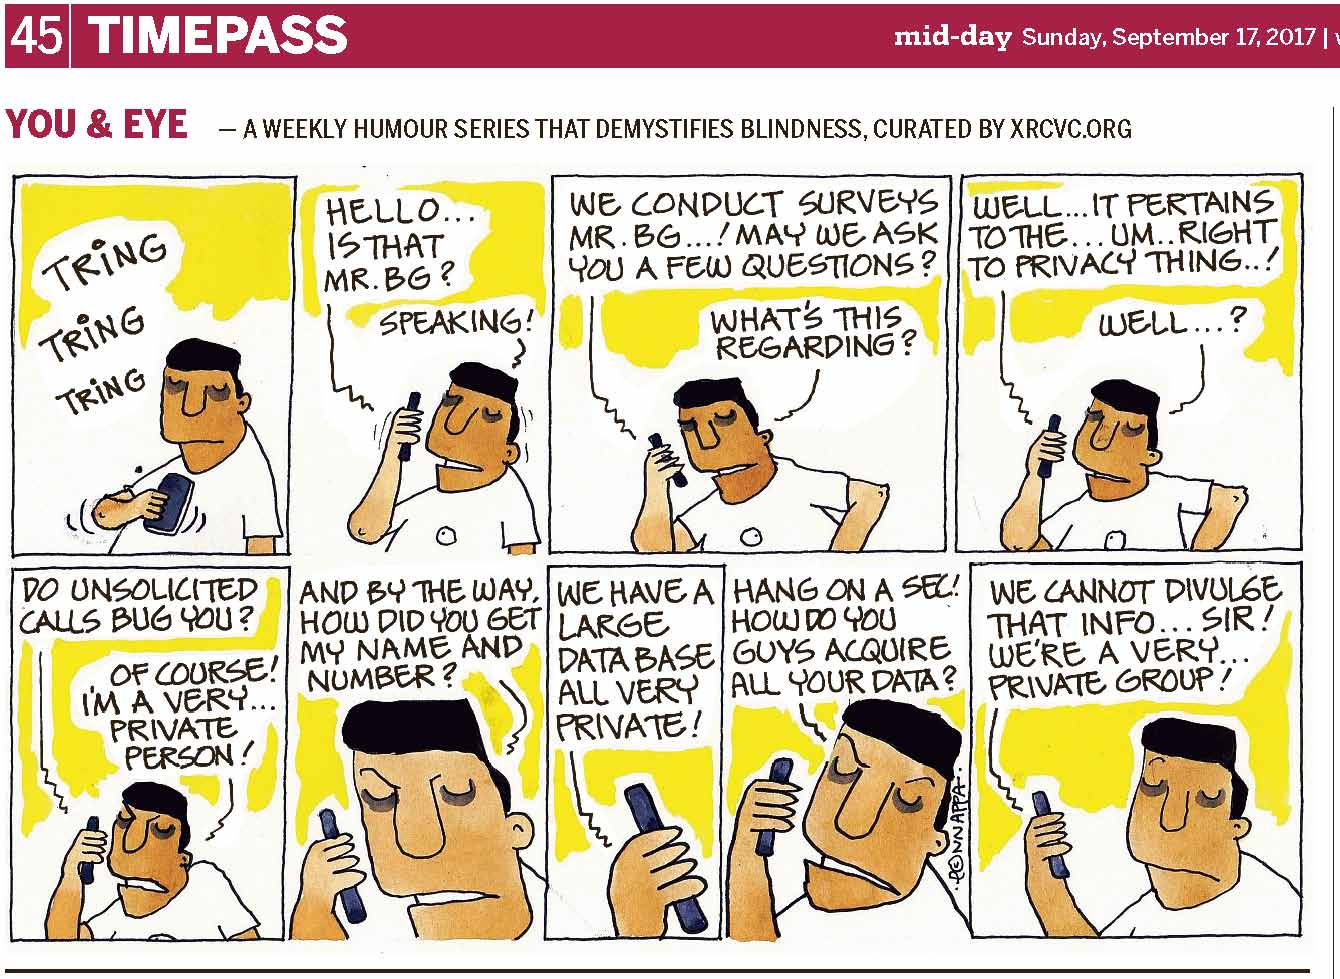 (top-left) 45 | TIMEPASS (top-right) mid-day Sunday, September 17, 2017 | YOU & EYE – A WEEKLY HUMOUR SERIES THAT DEMYSTIFIES BLINDNESS, CURATED BY XRCVC.ORG Image description: A cartoon strip with 9 frames… Frame 1: (BG is seen standing, and in his right hand, he is holding a mobile phone vertically in front of his chest. Small curved lines near his right elbow and near the mobile phone represent movement. The sound of the phone ringing is represented by the words TRING TRING TRING.) Frame 2: (BG is holding the mobile phone to his right ear while his mouth is now slightly open as he speaks. Small curved lines near his right hand and his head represent movement.) A line from the cell phone representing someone on the call: Hello… Is that Mr. BG? BG: Speaking! Frame 3: (BG continues to hold the mobile phone to his right ear with his mouth slightly open, and his left arm bent at the elbow as though his hand is resting on his hip.) The Caller: We conduct surveys Mr. BG…! May we ask you a few questions? BG: What's this regarding? Frame 4: (BG continues to hold the mobile phone to his right ear with his mouth slightly open, and his left arm bent at the elbow as though his hand is resting on his hip.) The Caller: Well… It pertains to the… um… Right to Privacy thing…! BG: Well…? Frame 5: (BG continues to hold the phone to his right ear with a frown on his face now.) The Caller: Do unsolicited calls bug you? BG: Of course! I'm a very… private person! Frame 6: (A close-up of BG as he holds the phone to his right ear with his eyebrows lowered) BG: And by the way, how did you get my name and number? 